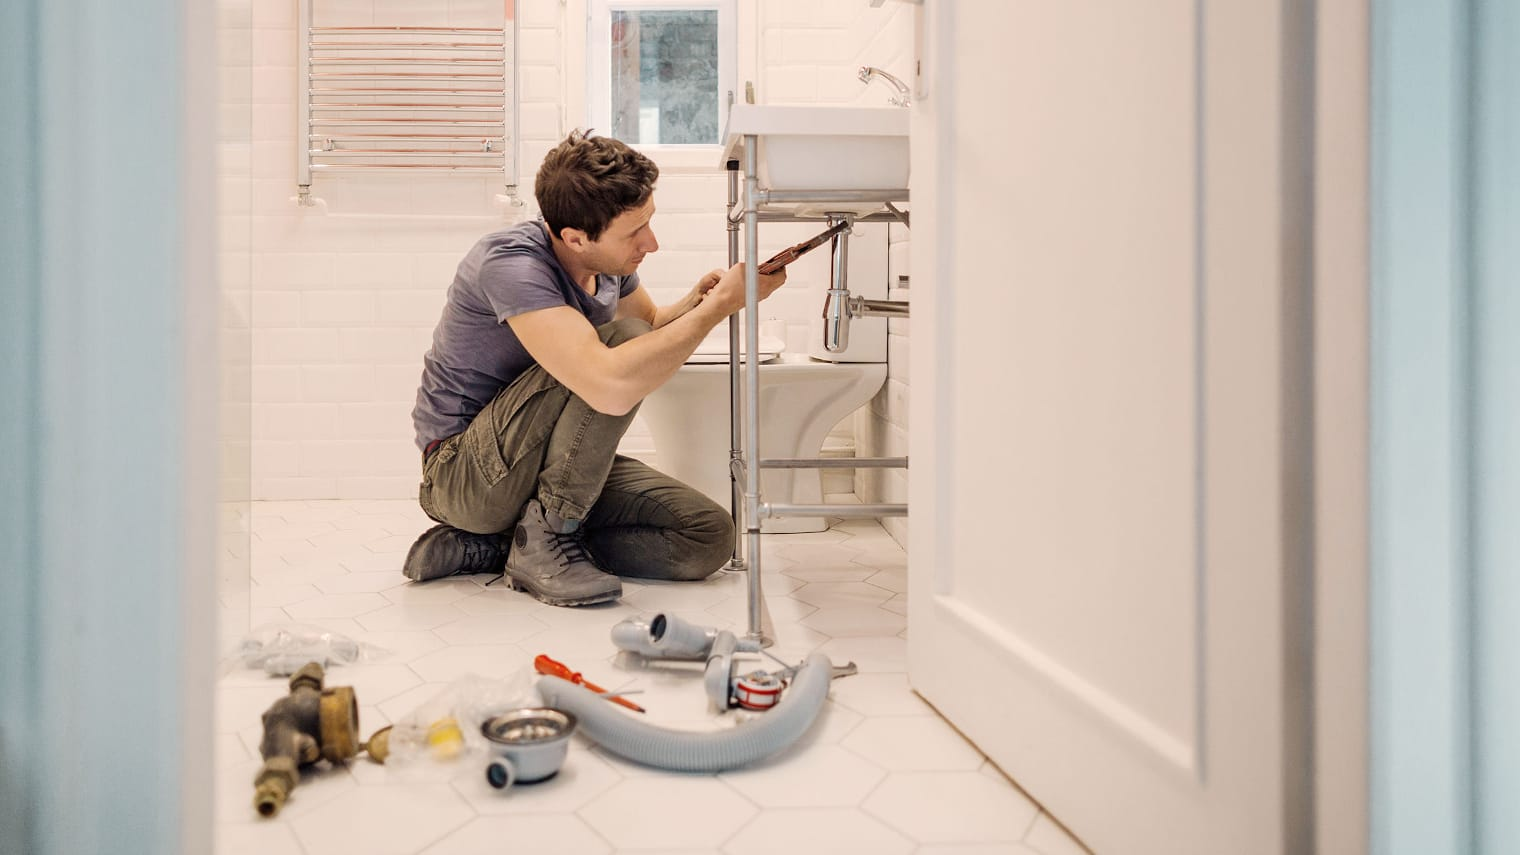 A man kneels in front of a washbasin in the bathroom and screws in a replacement drain system.